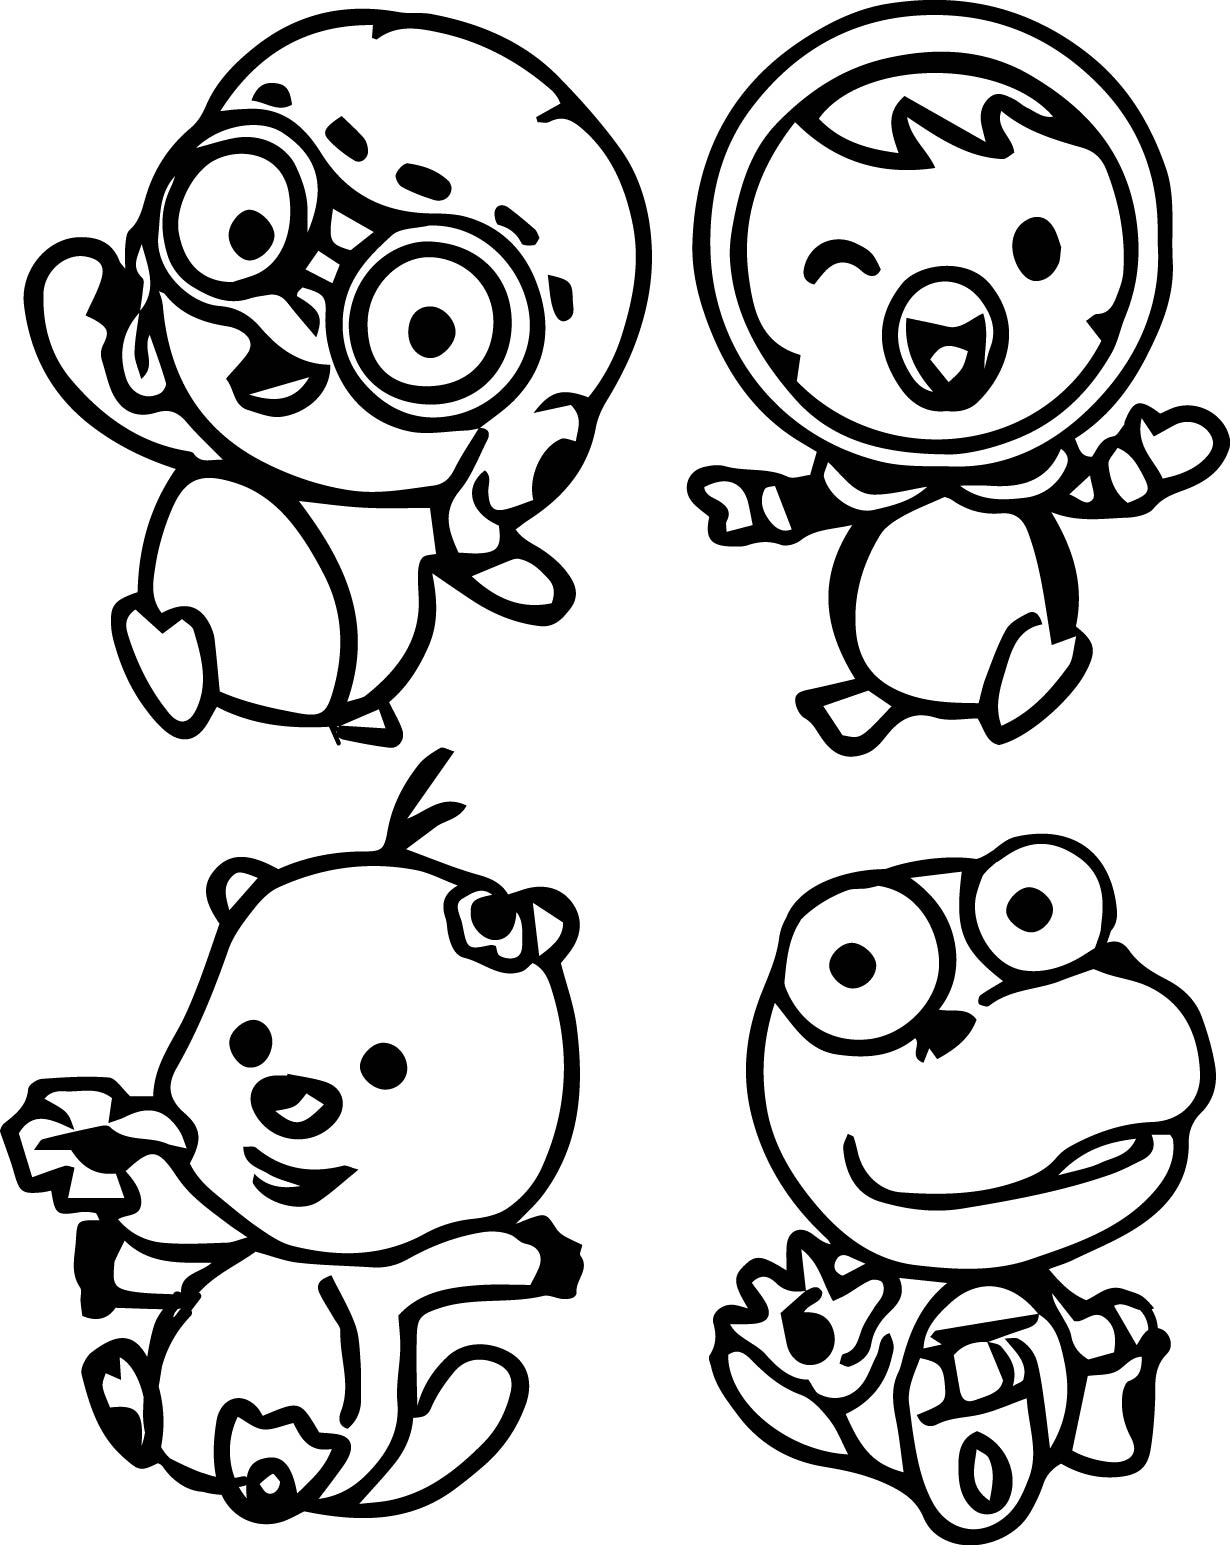 Coloriage personnages Pororo